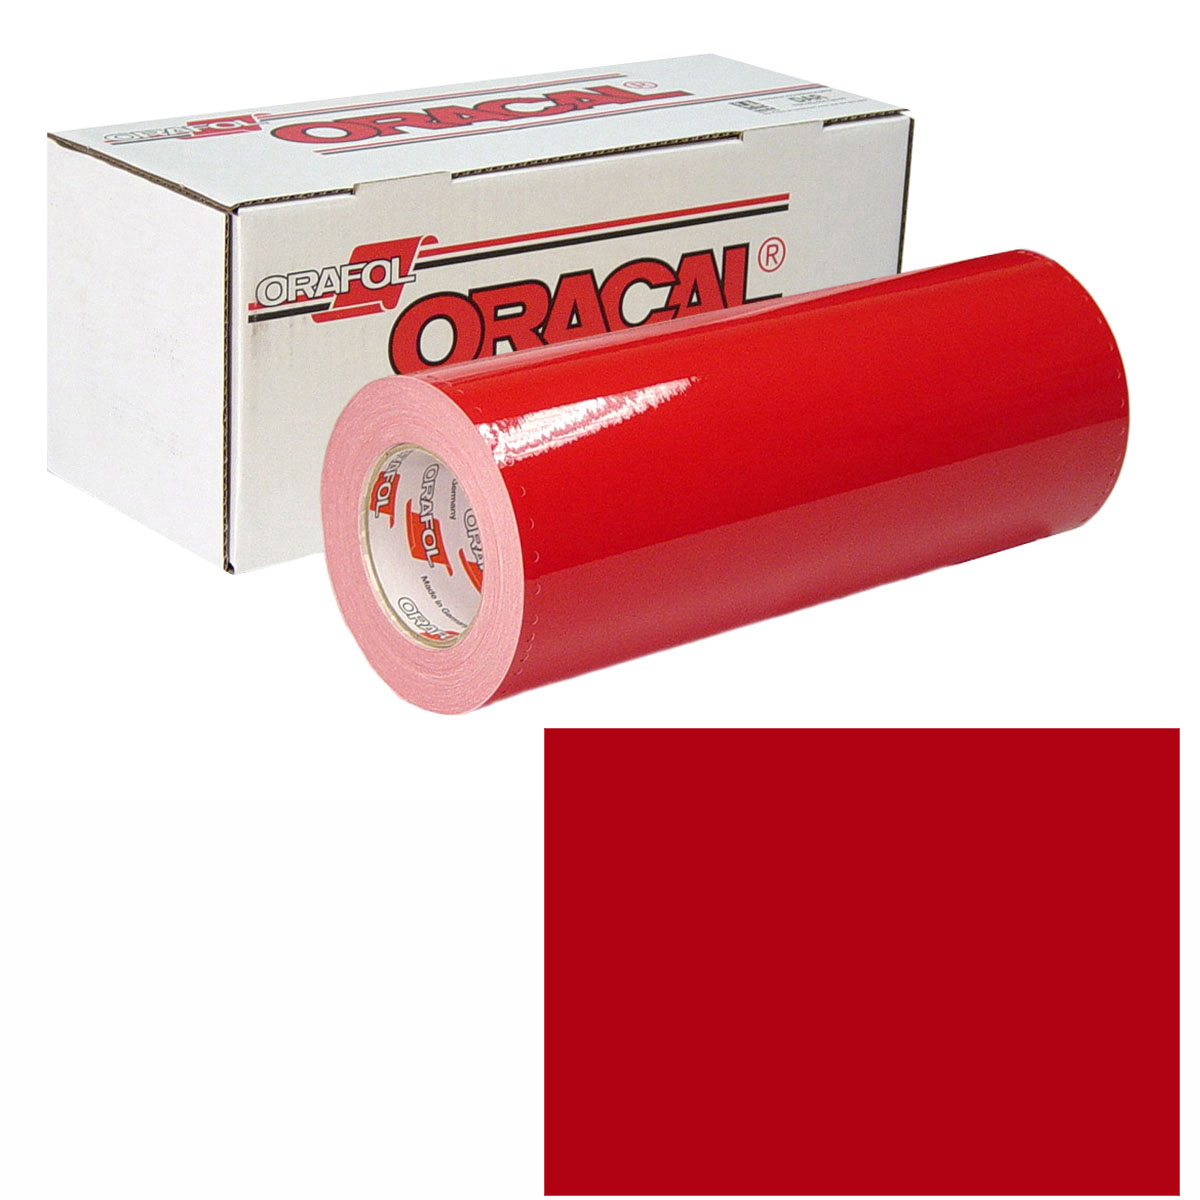 ORACAL 951 Unp 24in X 10yd 305 Geranium Red